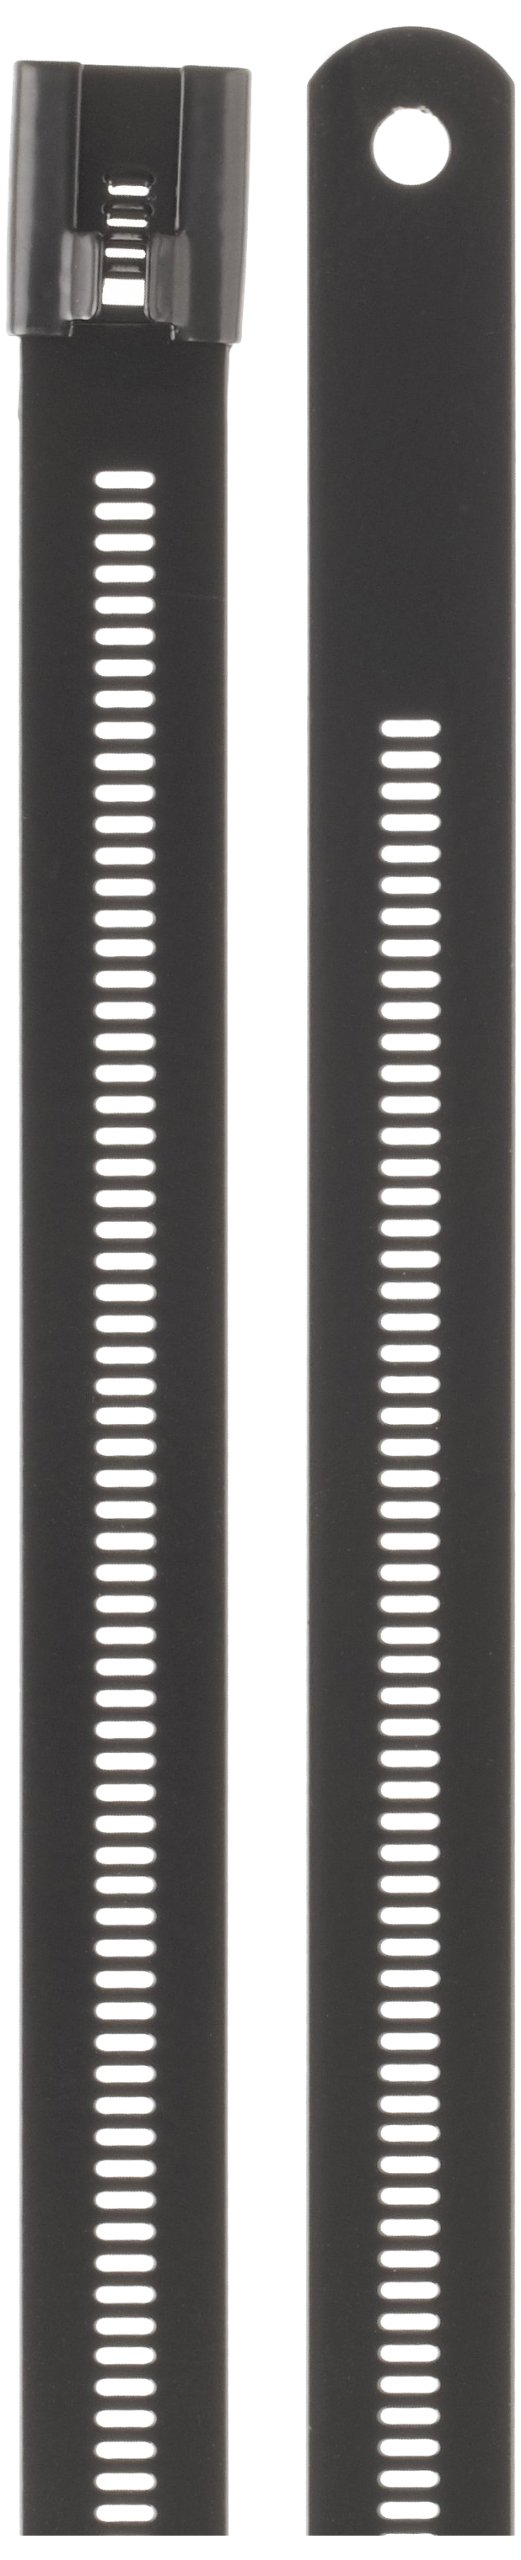 BAND-IT AE7159 316 Stainless Steel Multi Lok Cable Tie, 0.47'' Width, 24'' Length, 7.1'' Maximum Diameter, Bag of 100